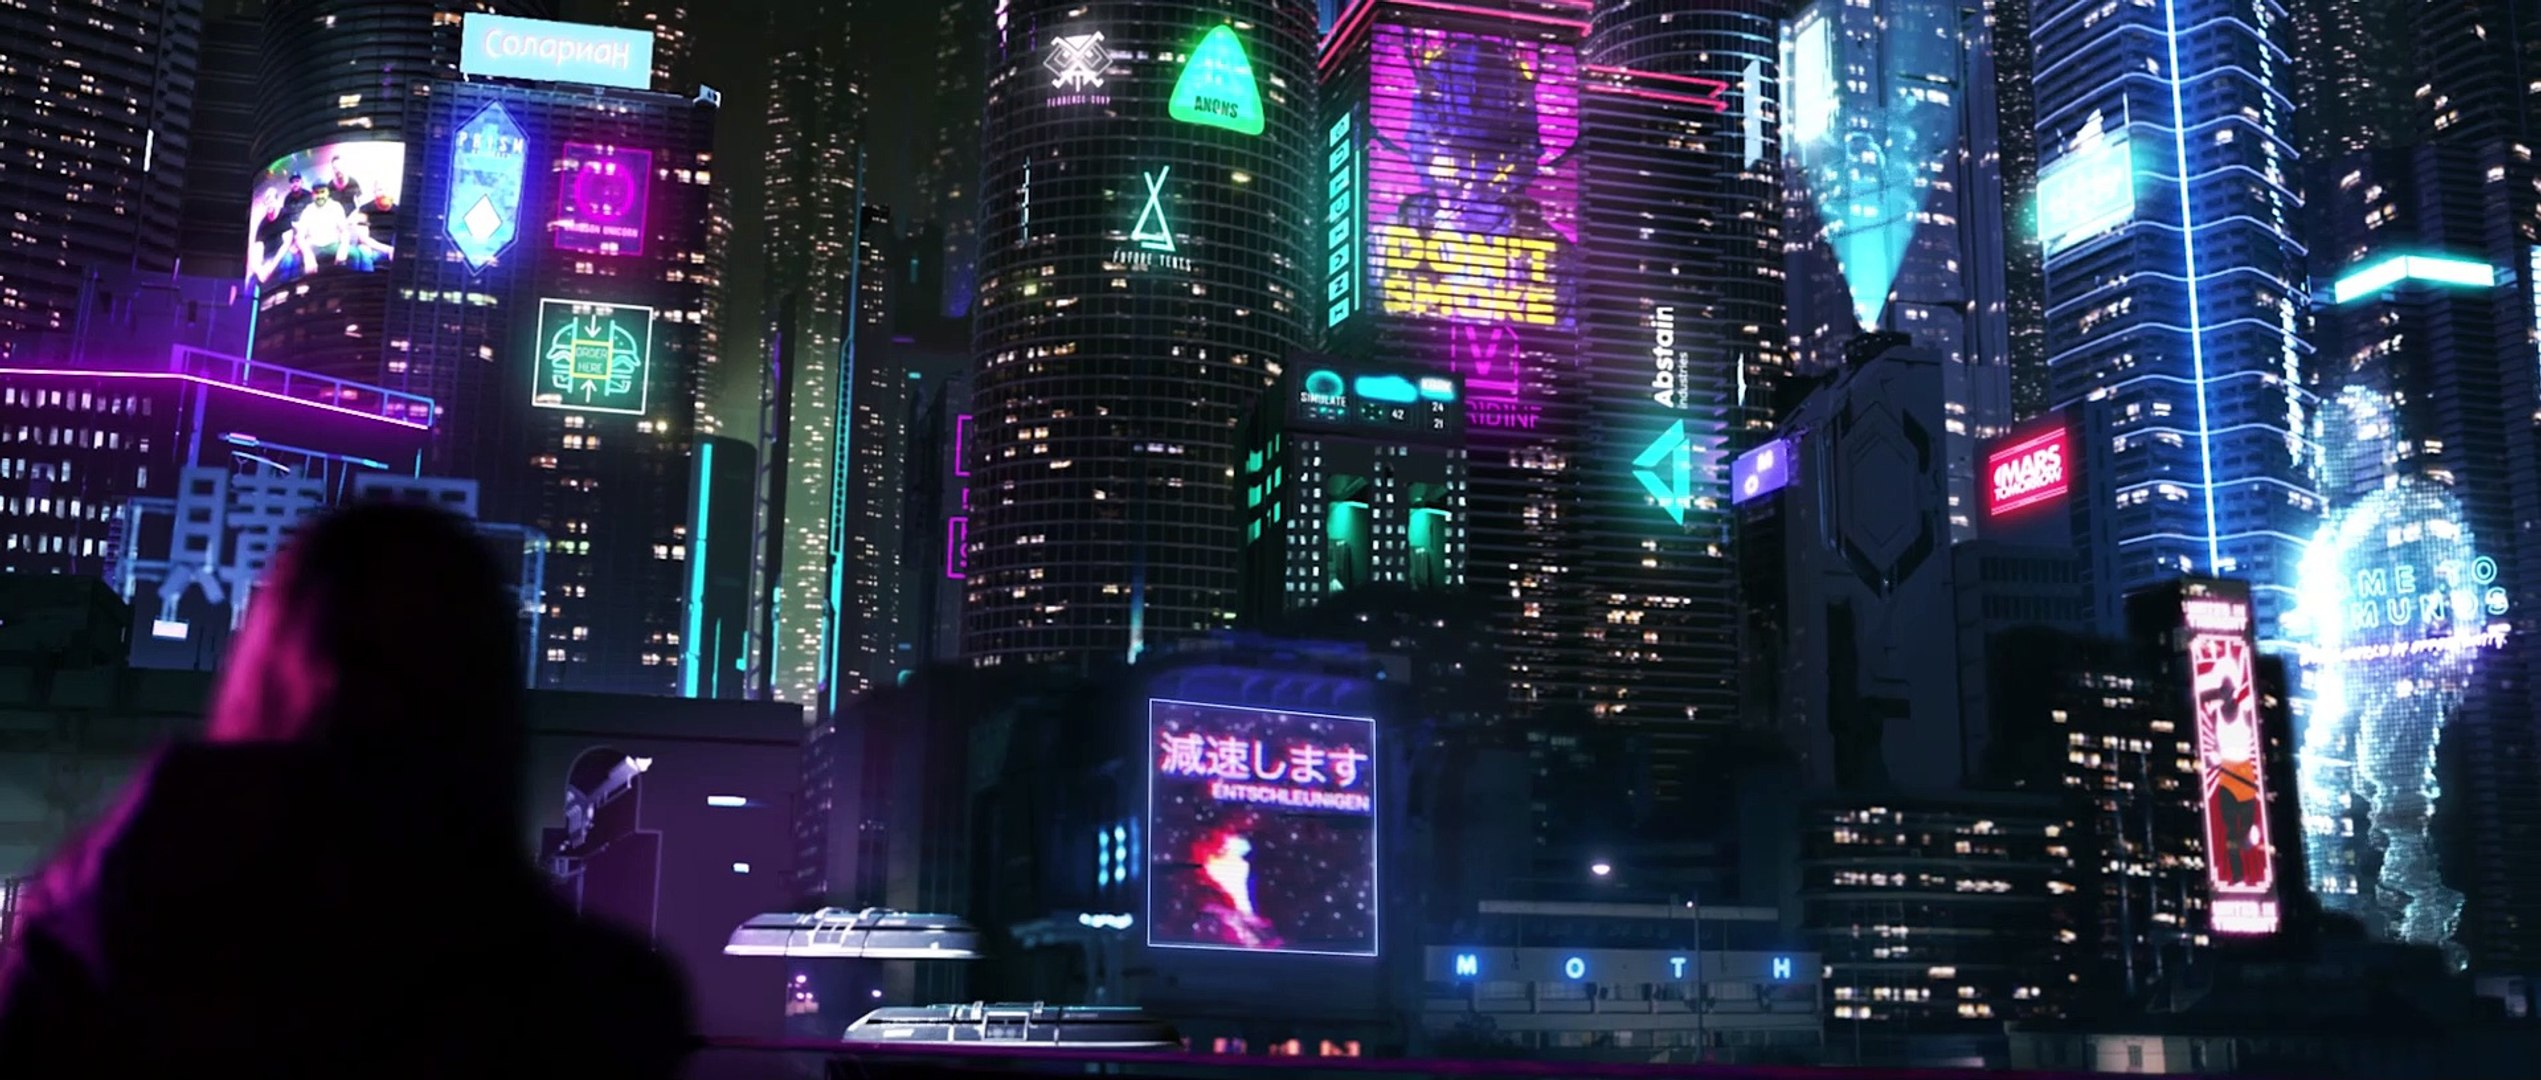 A cityscape in an Opera browser short Sci-fi film